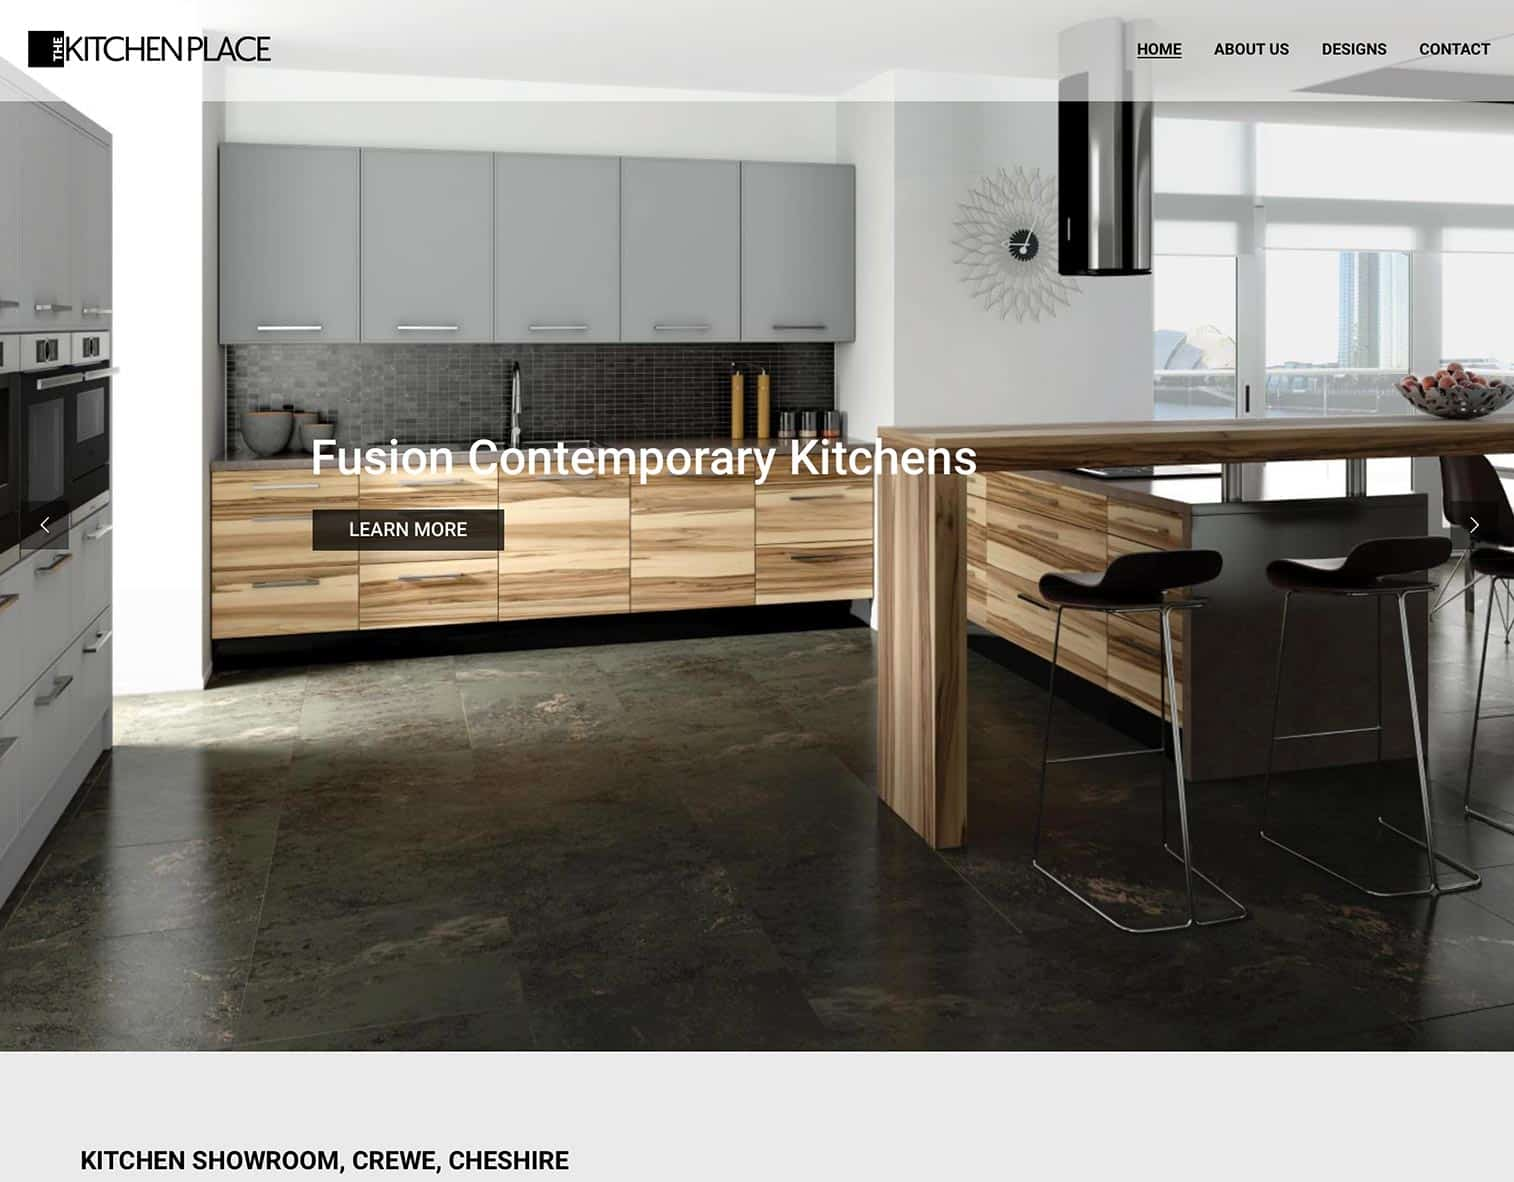 The Kitchen Place Website - KITCHEN SHOWROOM, CREWE, CHESHIRE